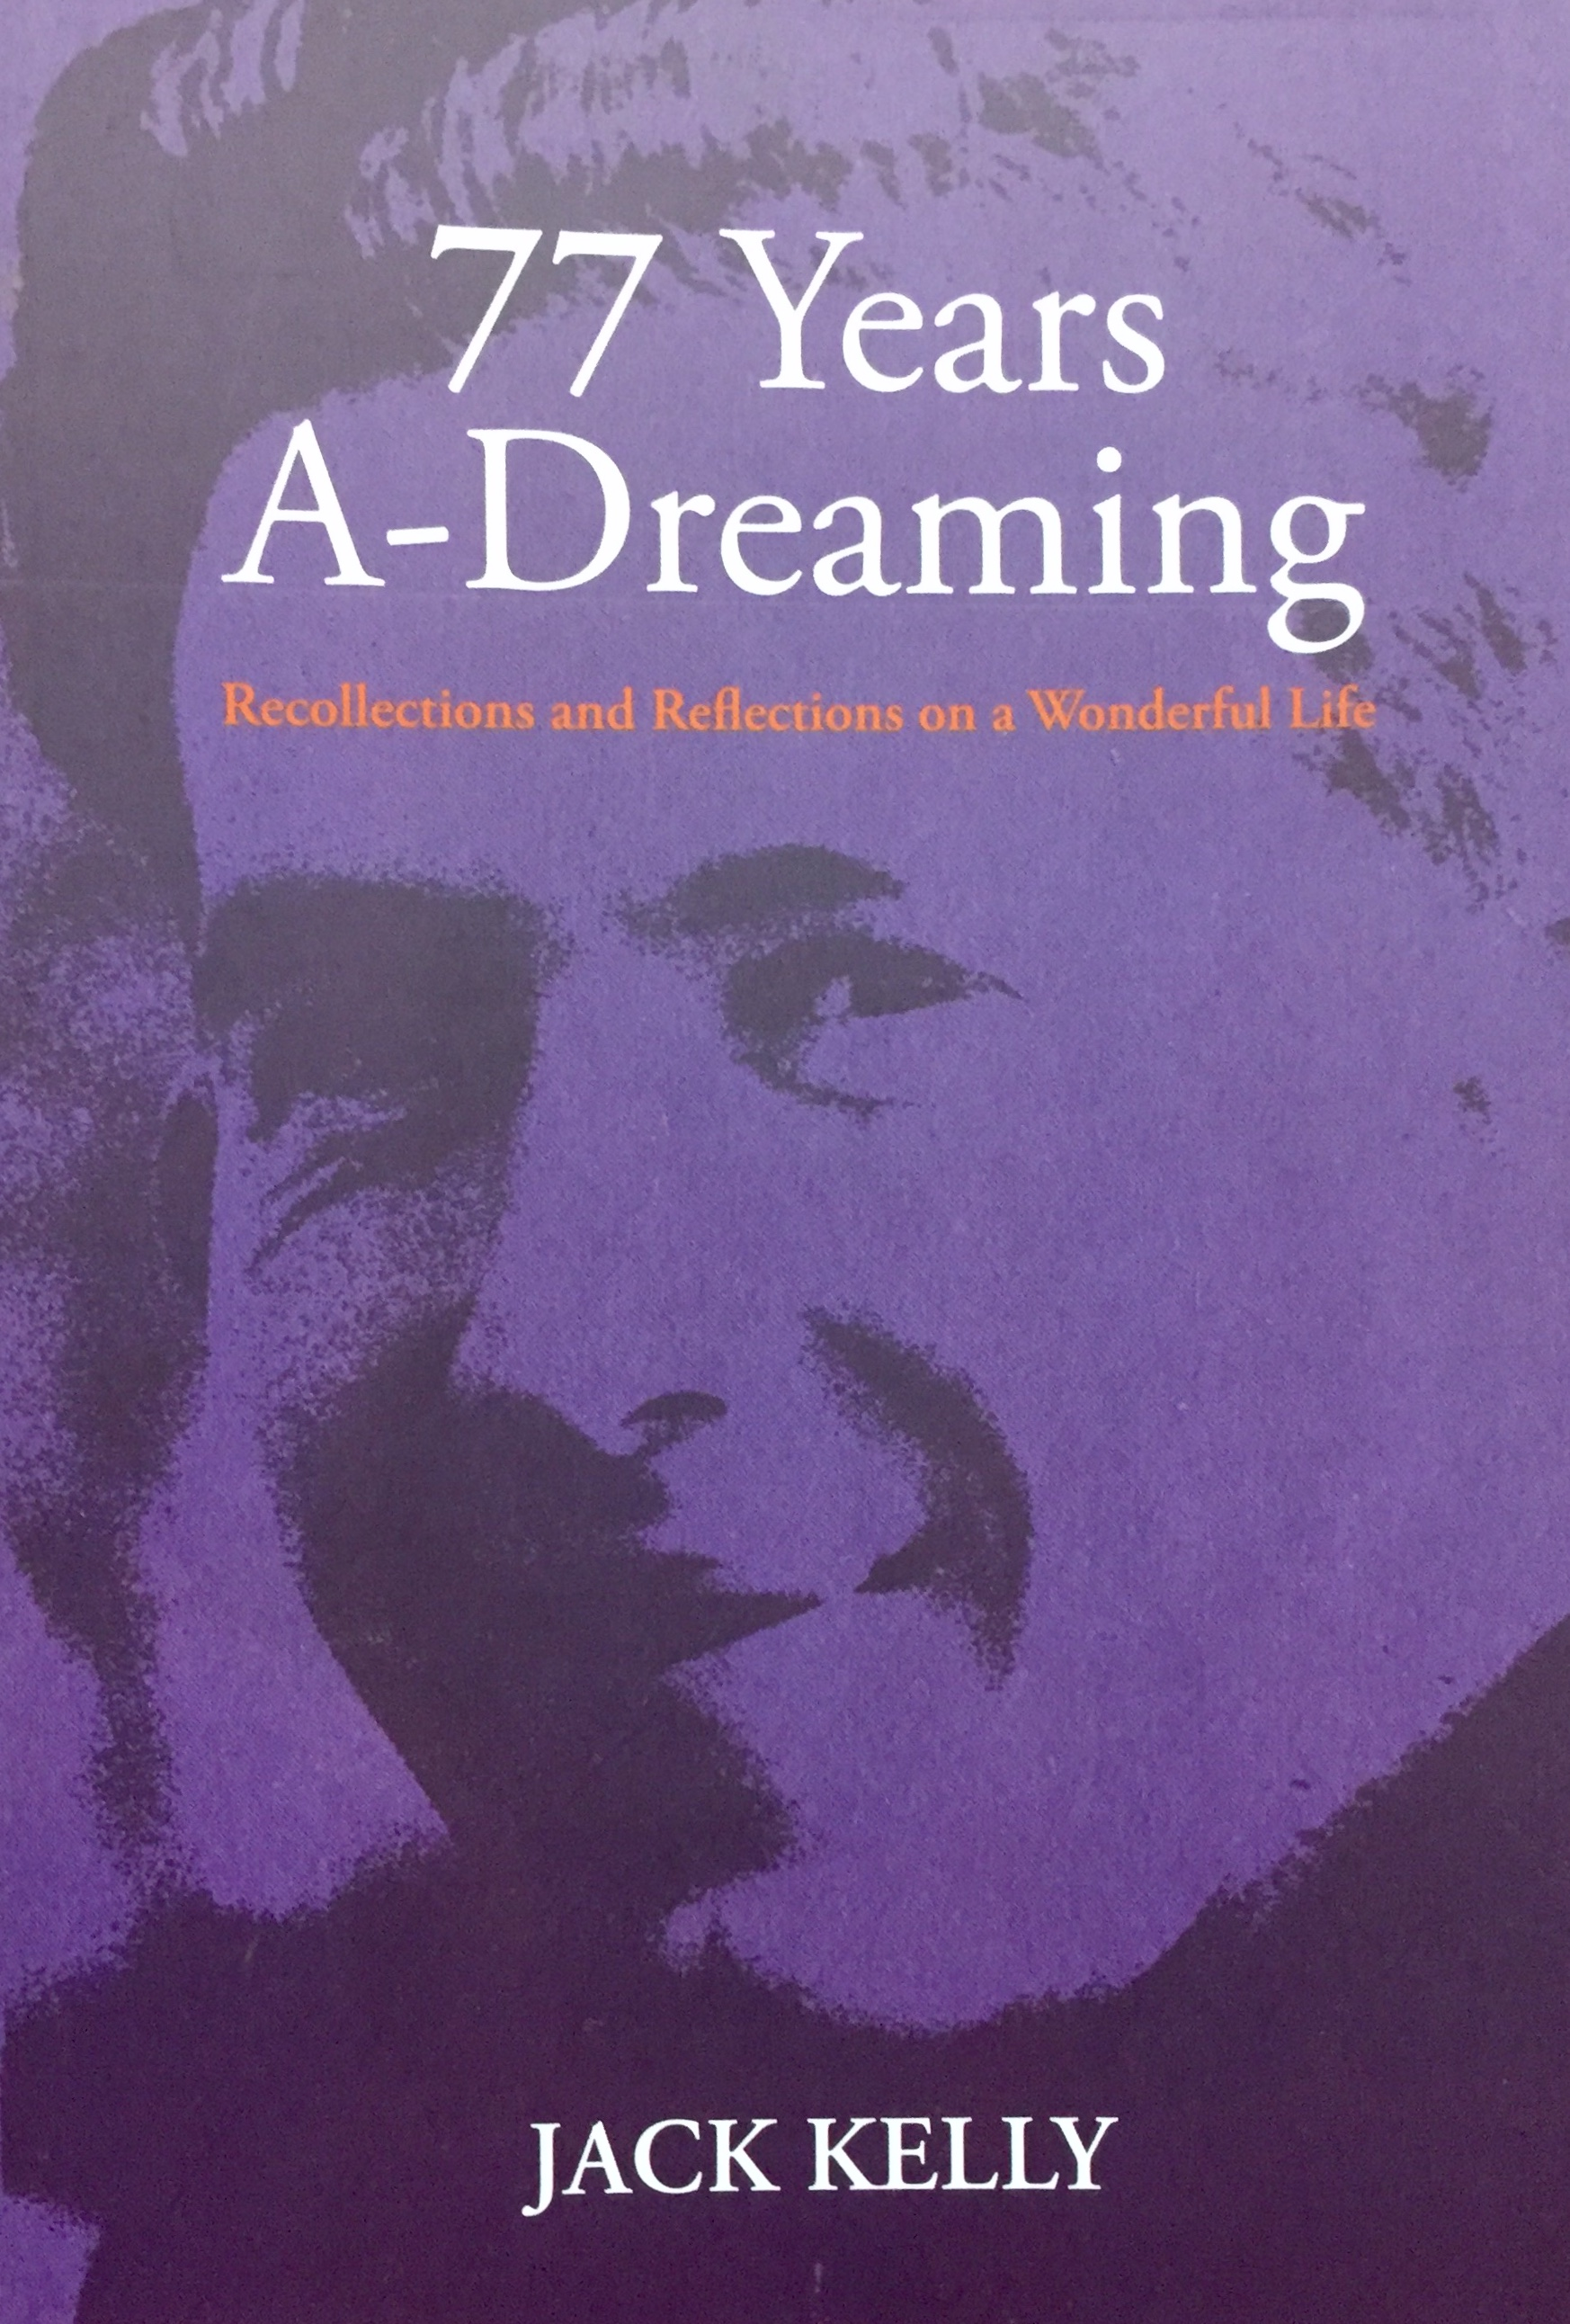 77 Years A Dreaming by Jack Kelly